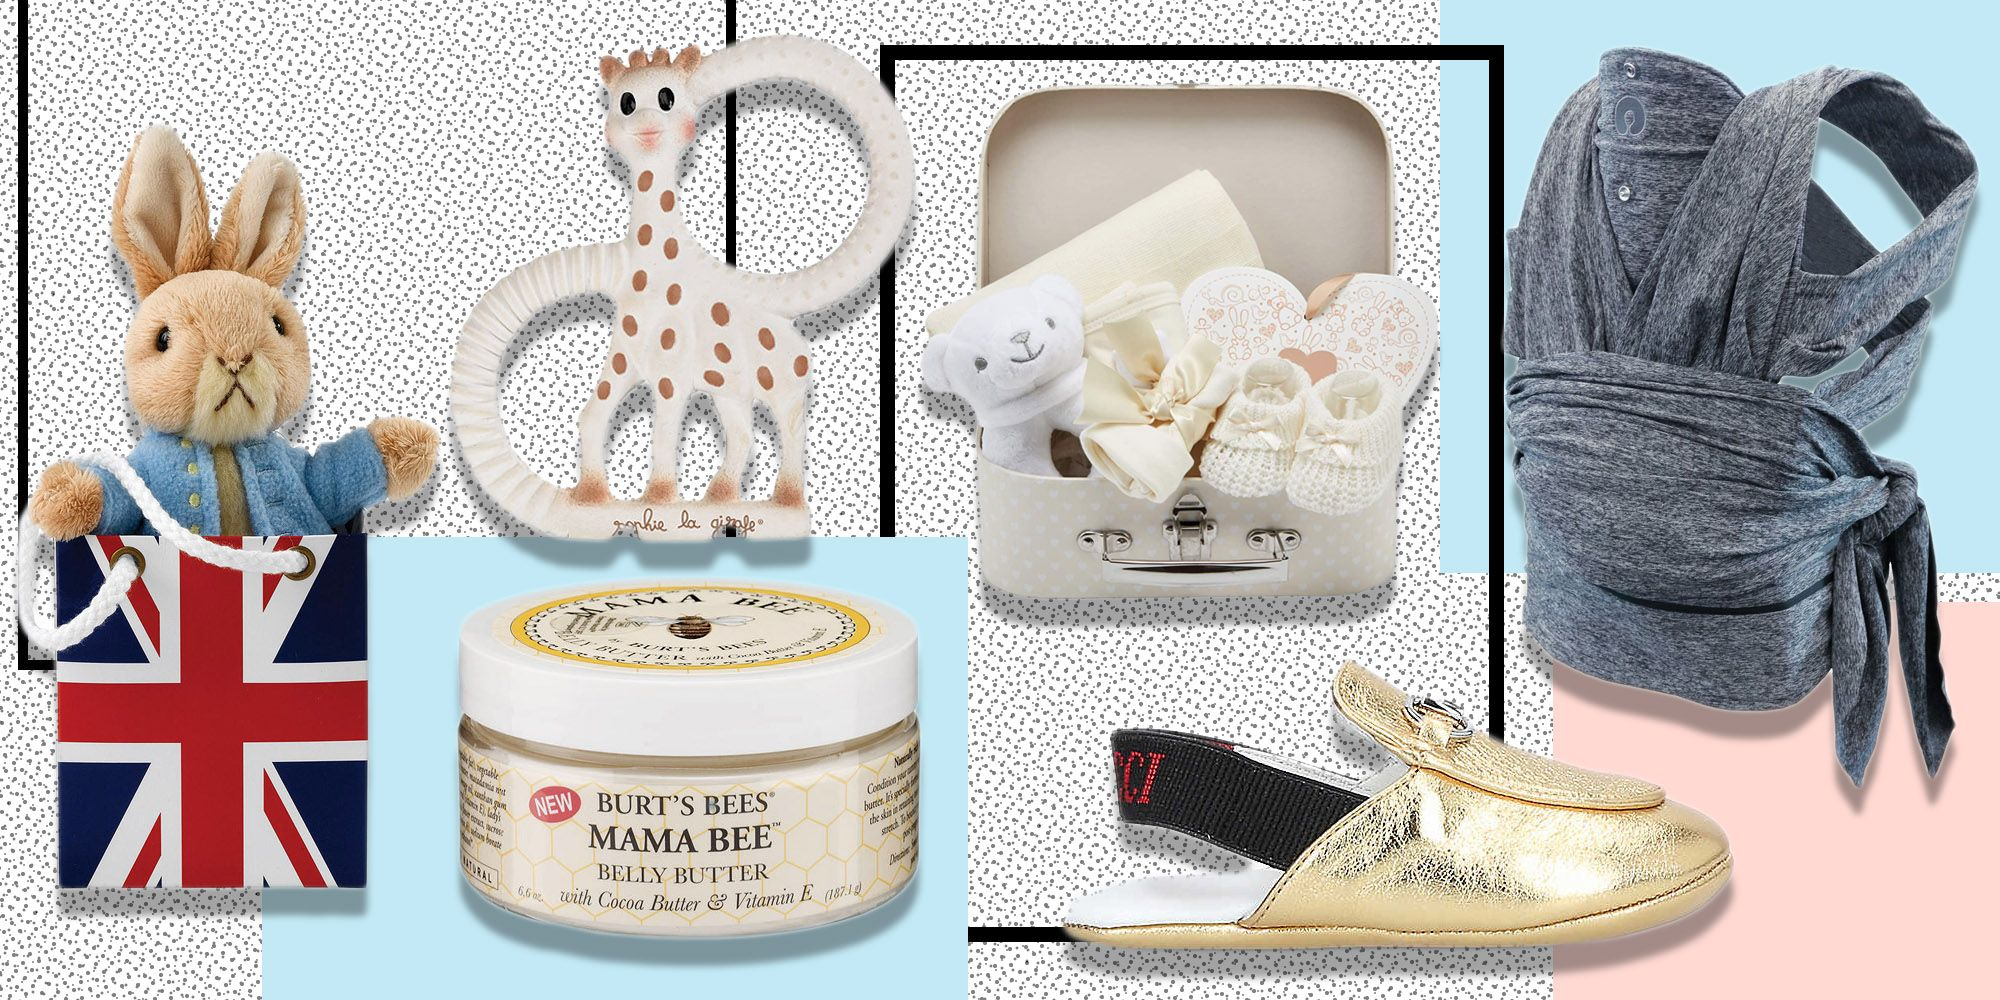 27 Of The Sweetest Baby Shower Gifts To Buy For The Little Tot And New Parents In Your Life